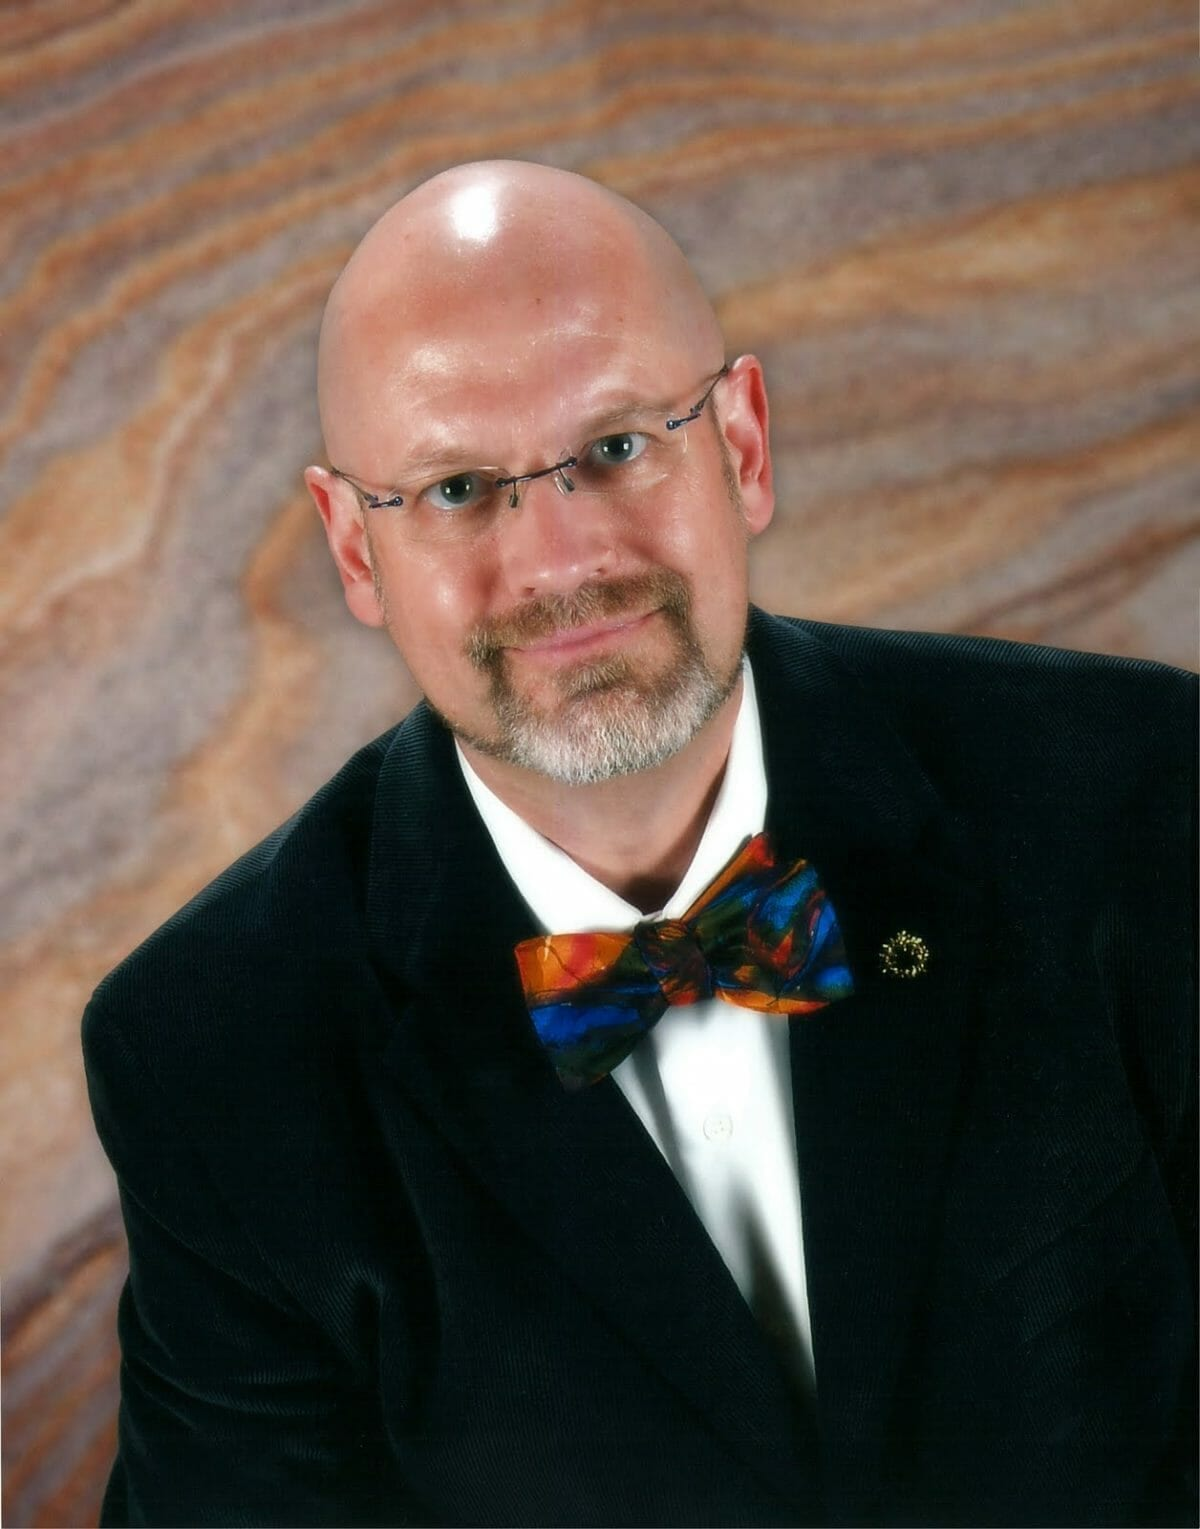 Picture of Christian apologist, James White.